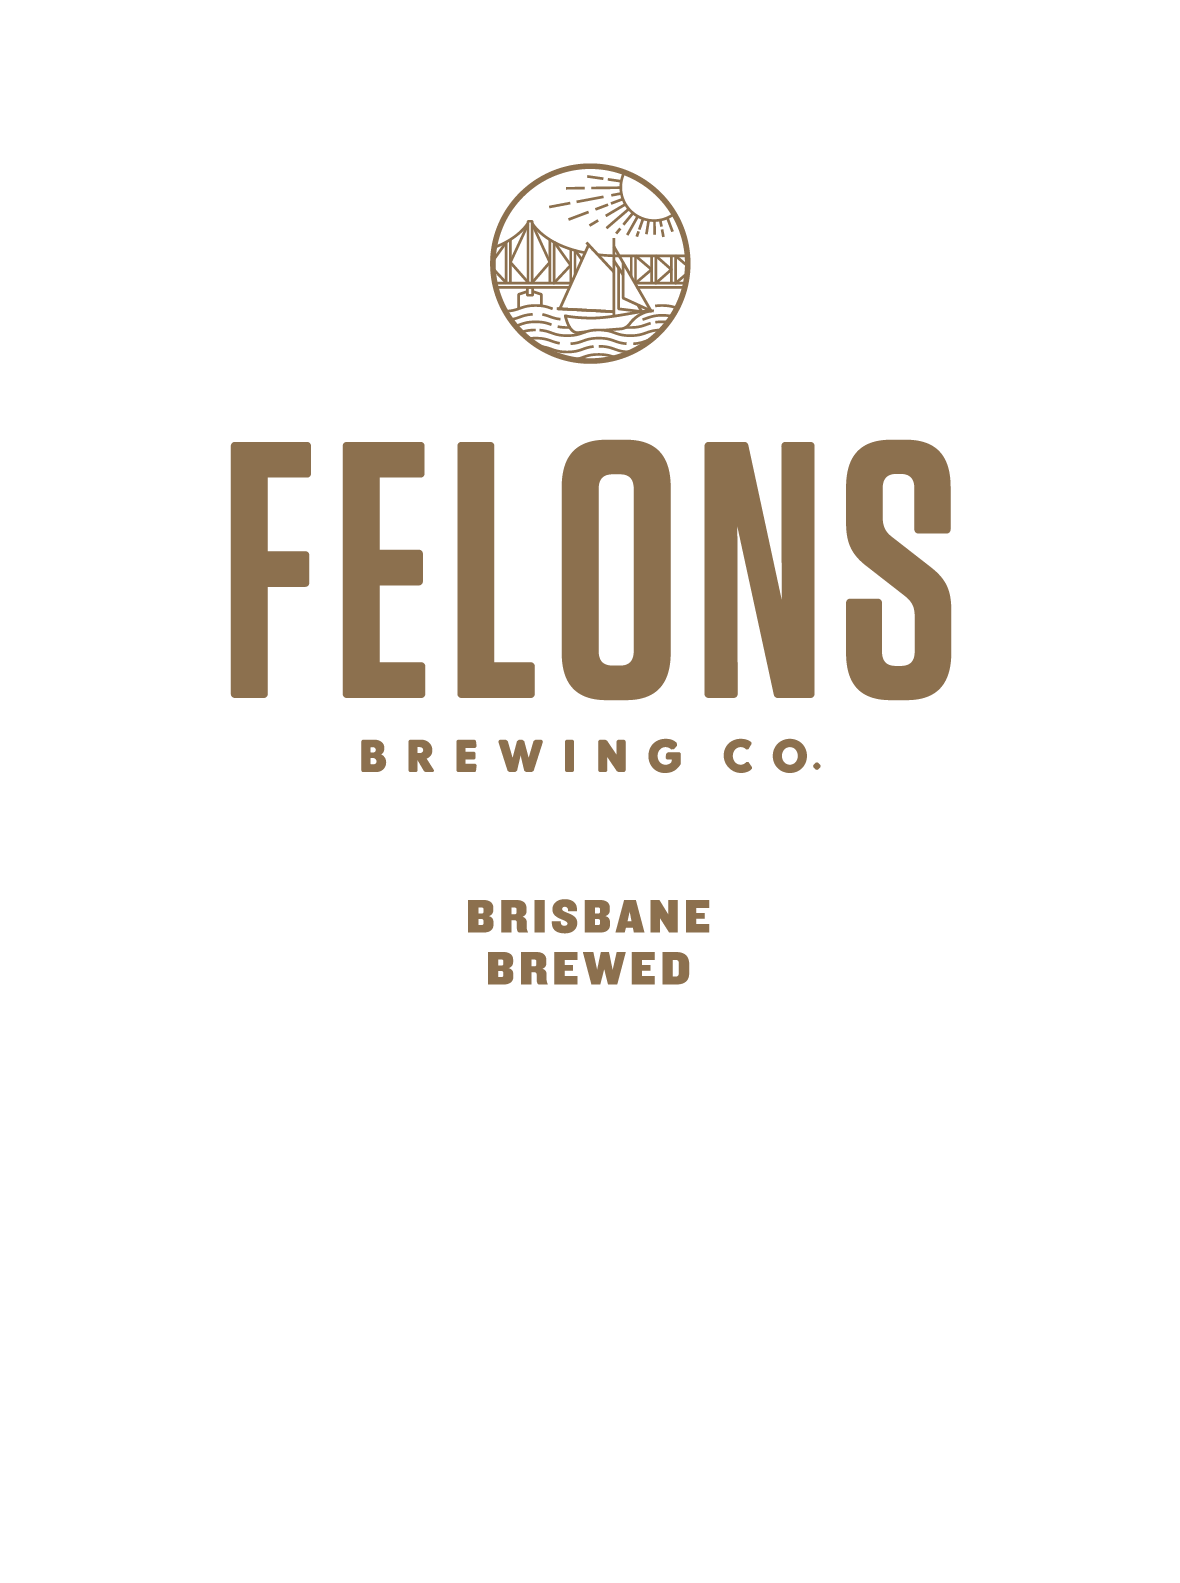 Felons Brewing Co